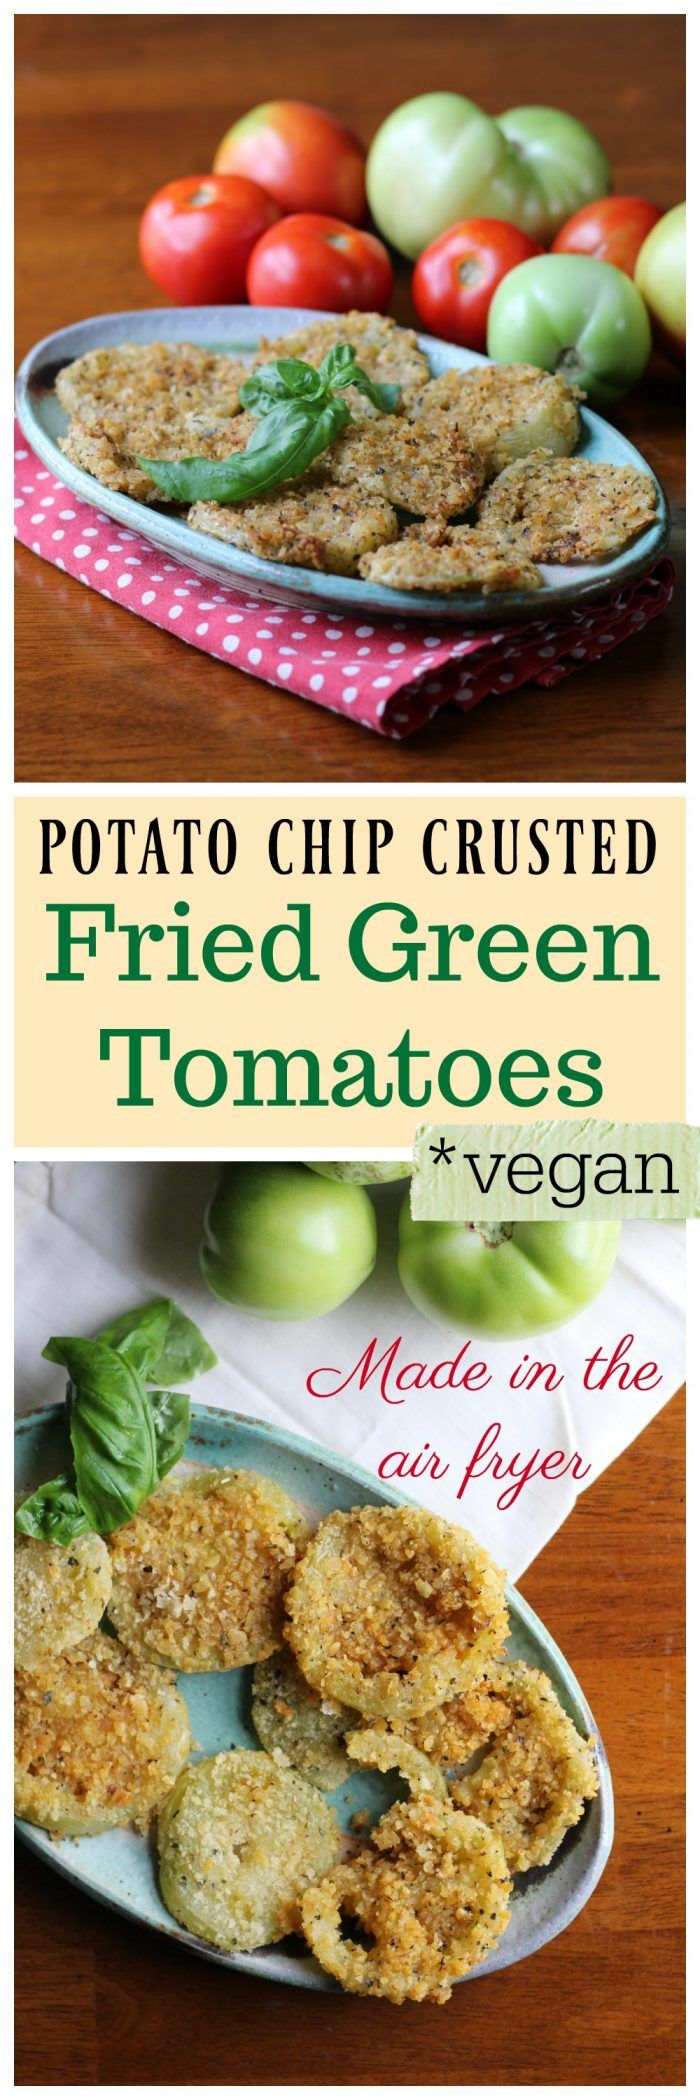 Vegan fried green tomatoes made in the air fryer. They are crusted with potato chips (for a gluten-free option) or panko bread crumbs. | cadryskitchen.com via @cadryskitchen